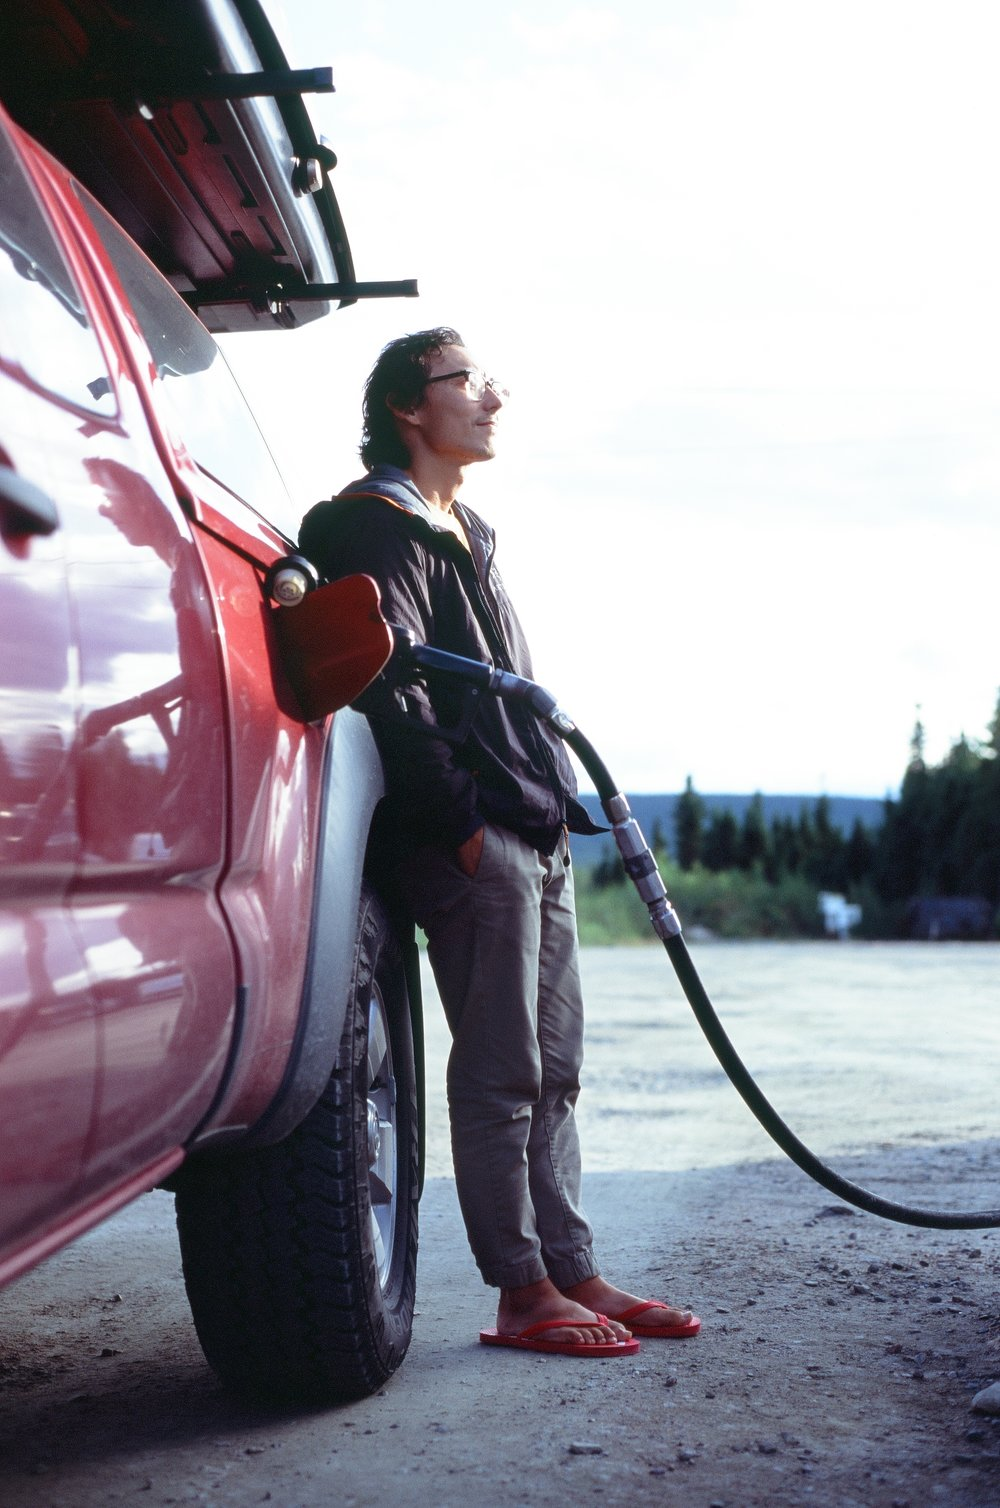 Owen filling up on gas in Churchill Falls where we paid over $7USD a gallon, 35mm